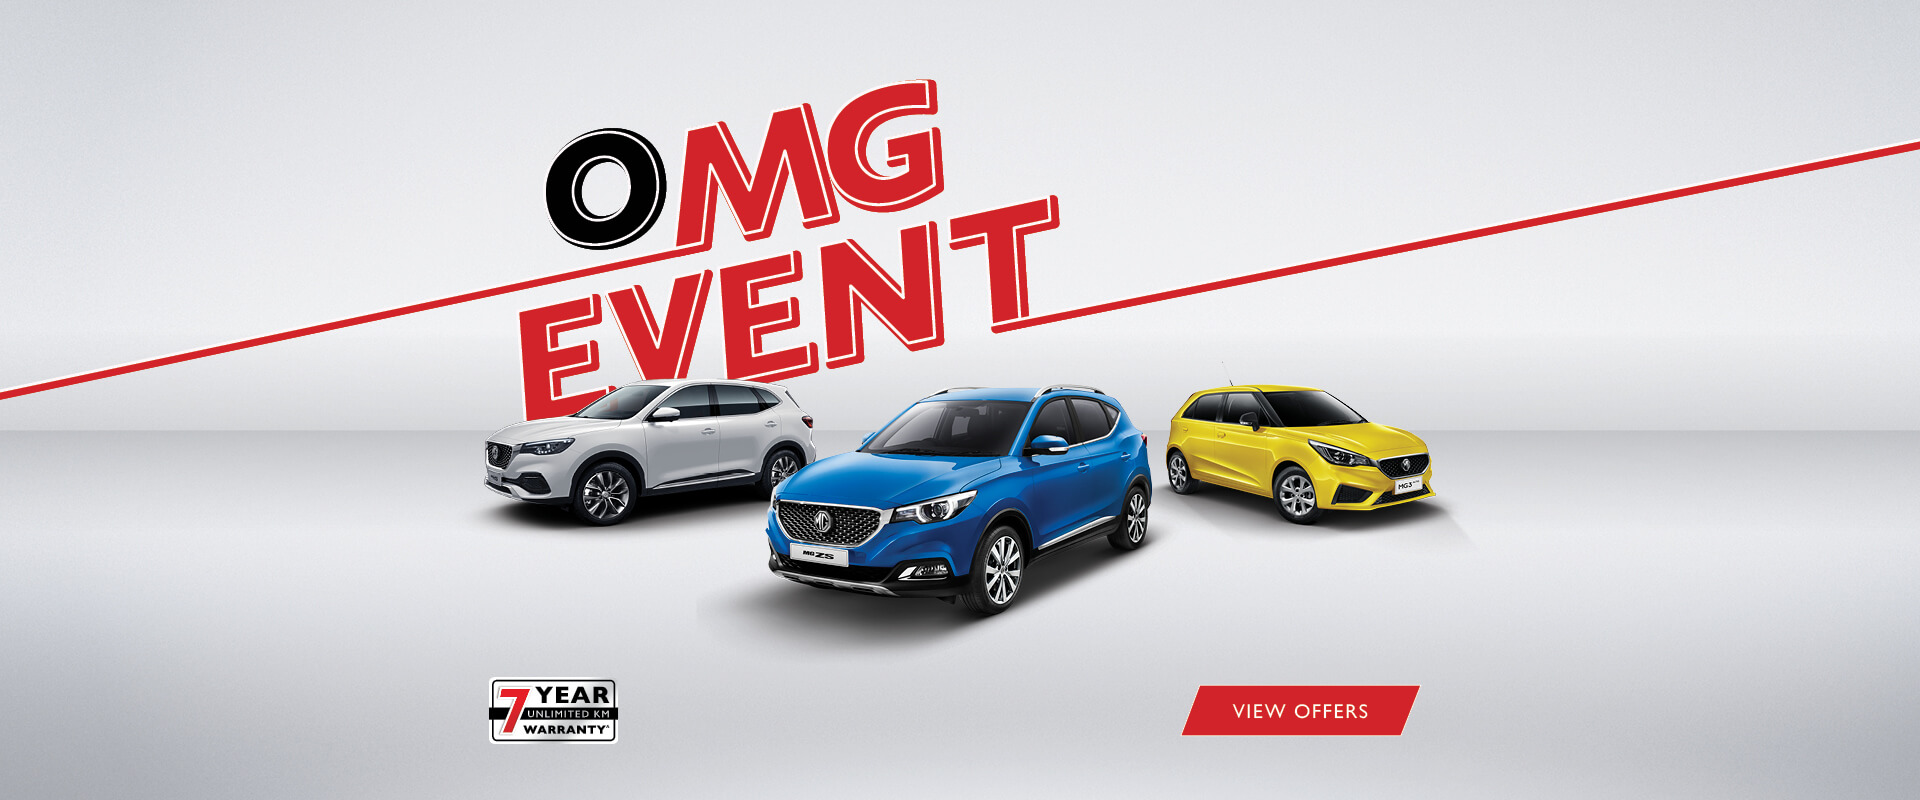 The MG OMG Event is on now. View Offers.